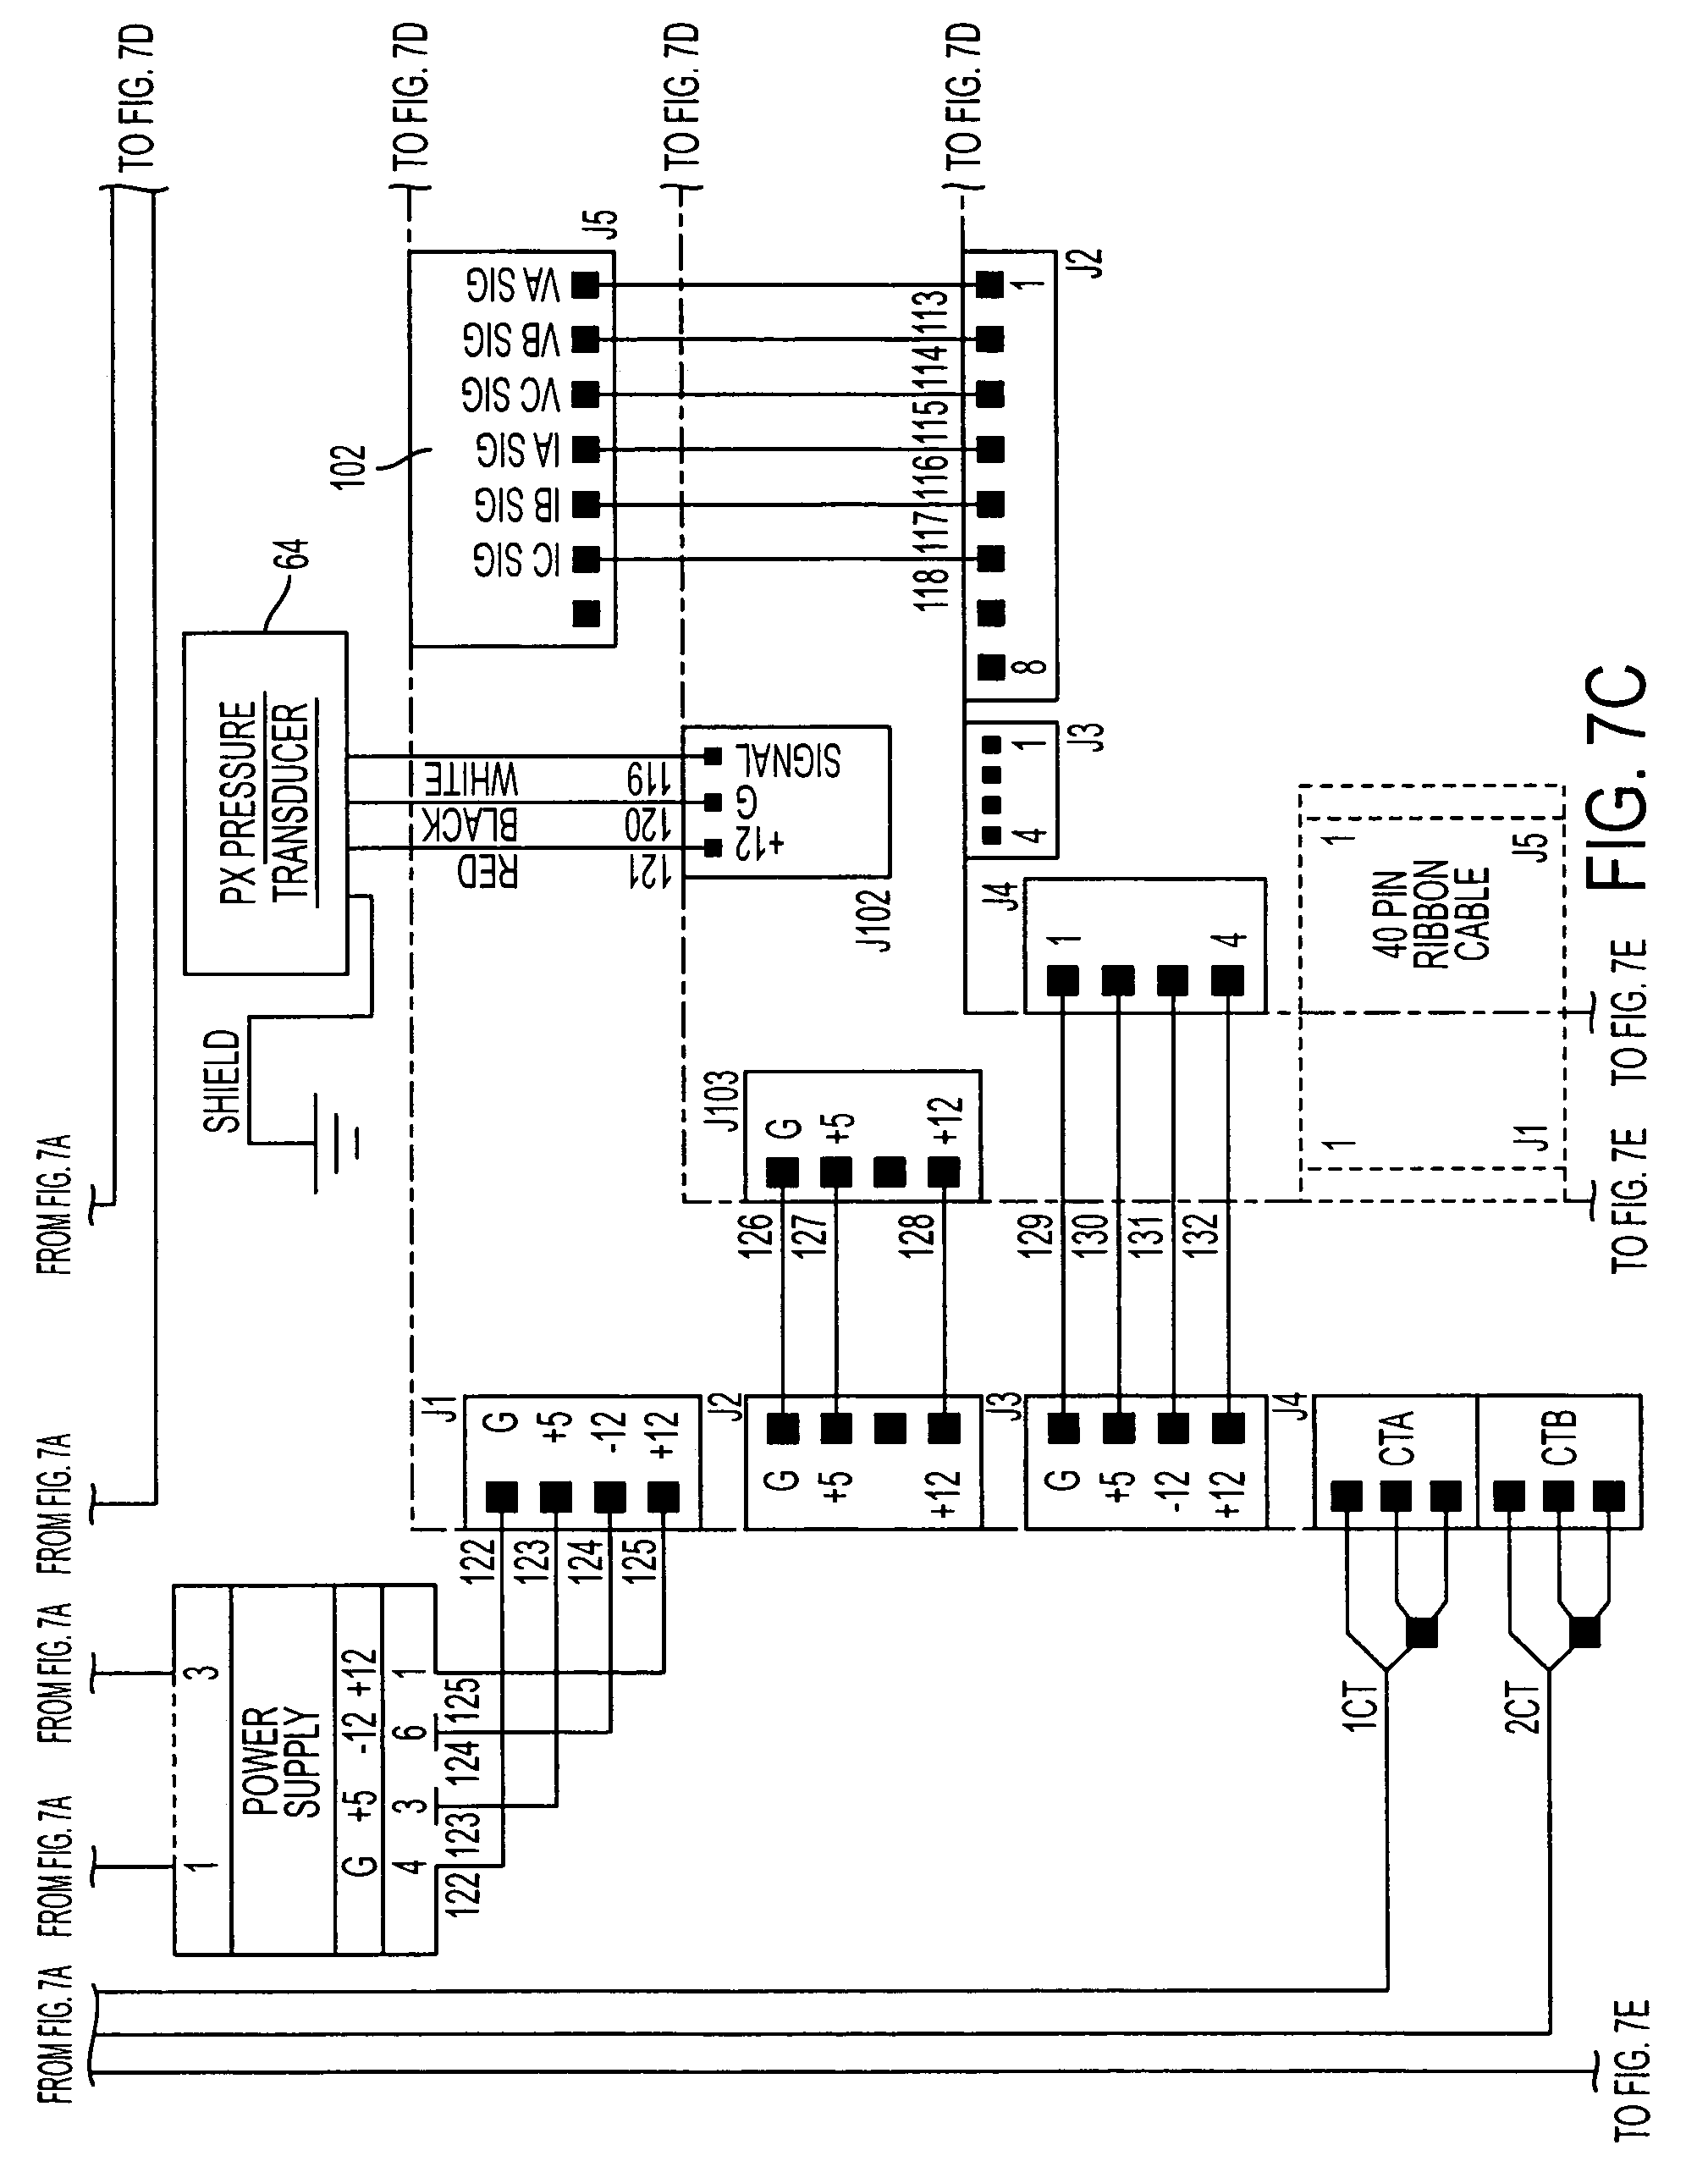 engine control module wiring diagram with Us7762786 on 1968 Mustang Wiring Diagram Vacuum Schematics also Repairs willcoxcorvette also Engine as well P0710 moreover Discussion T17841 ds547485.